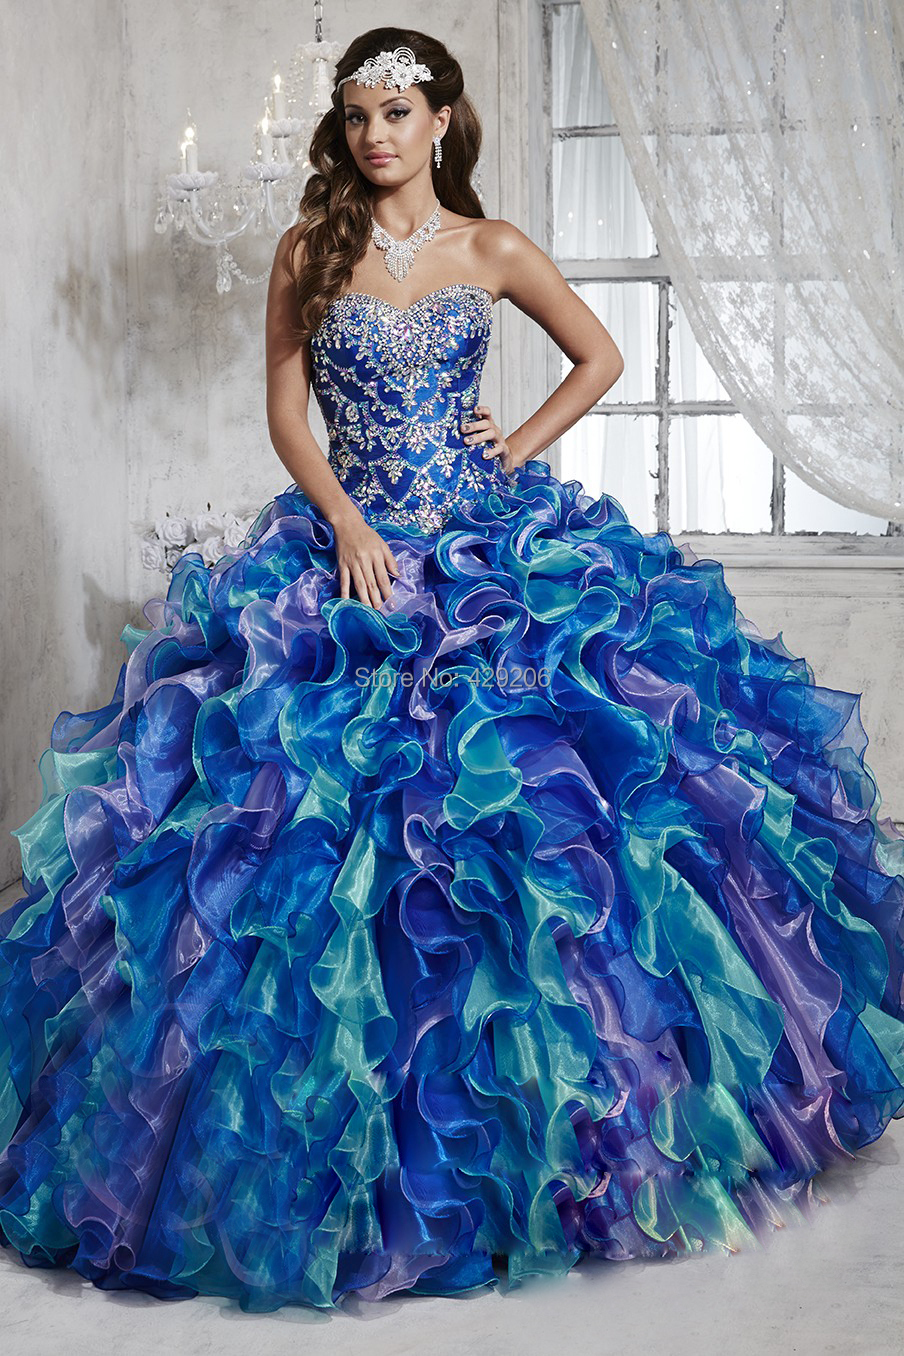 Aliexpress.com : Buy Amazing Ball Gown Quinceanera Dresses 2016 ...